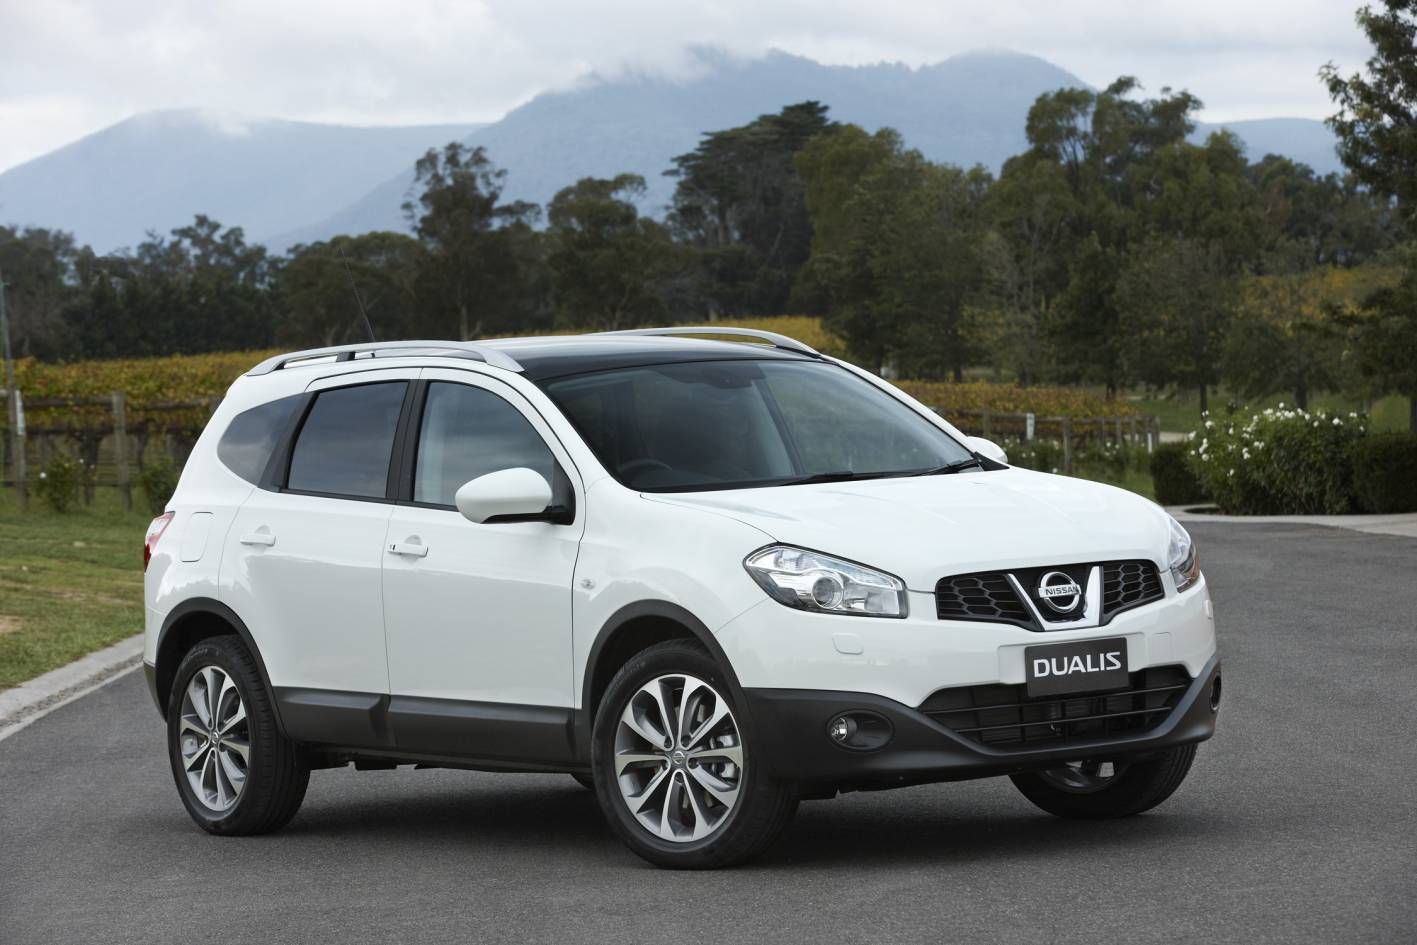 7 Seater 7 Seater Cars And 7 Seater Suvs Family Cars Australia